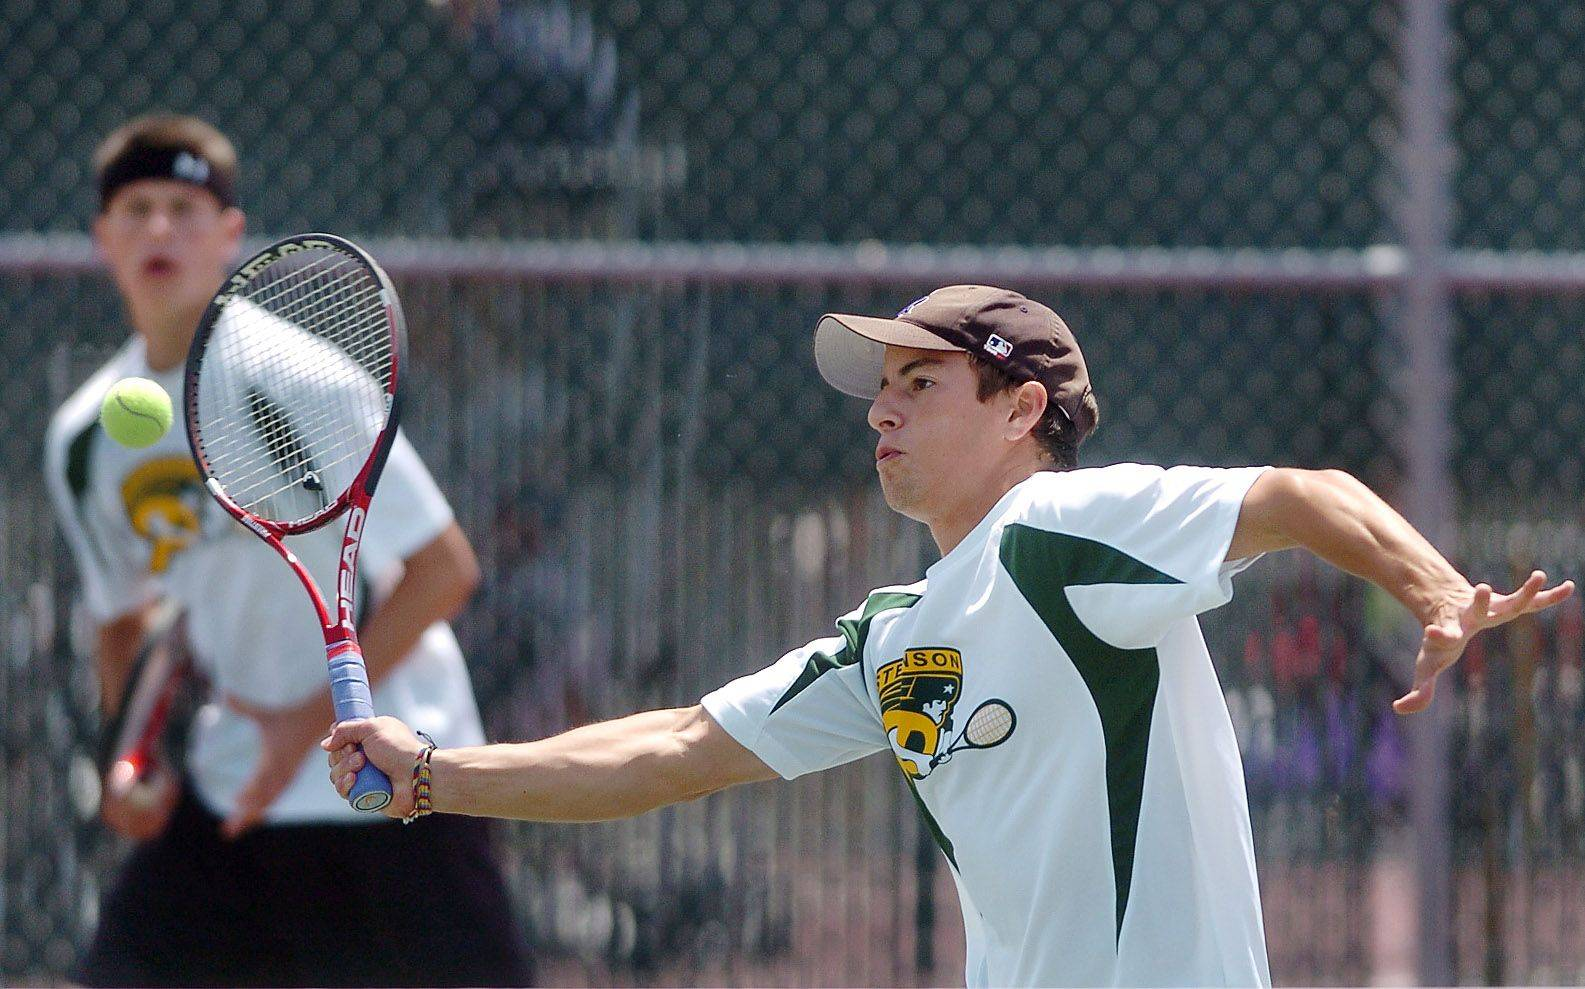 Stevenson's Ross Putterman, left, and David Packowitz, here competing in Friday's semifinals, rolled to the doubles state championship on Saturday.